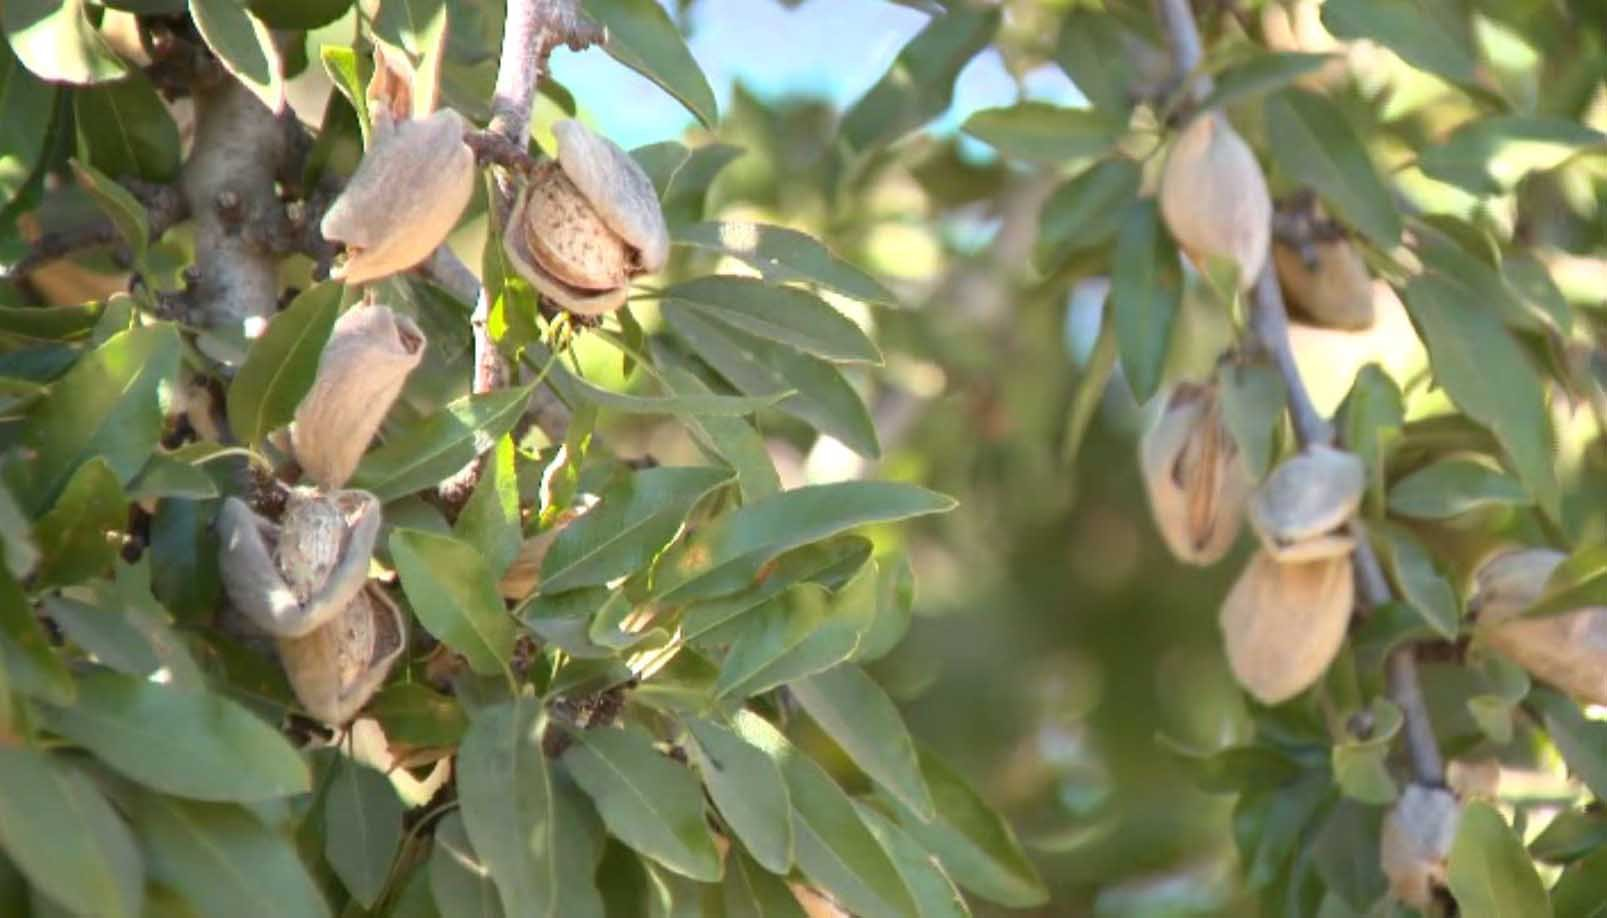 California almond growers worry possible Chinese tariffs could be disastrous for this year's record crop. (Source: KCRA via CNN)